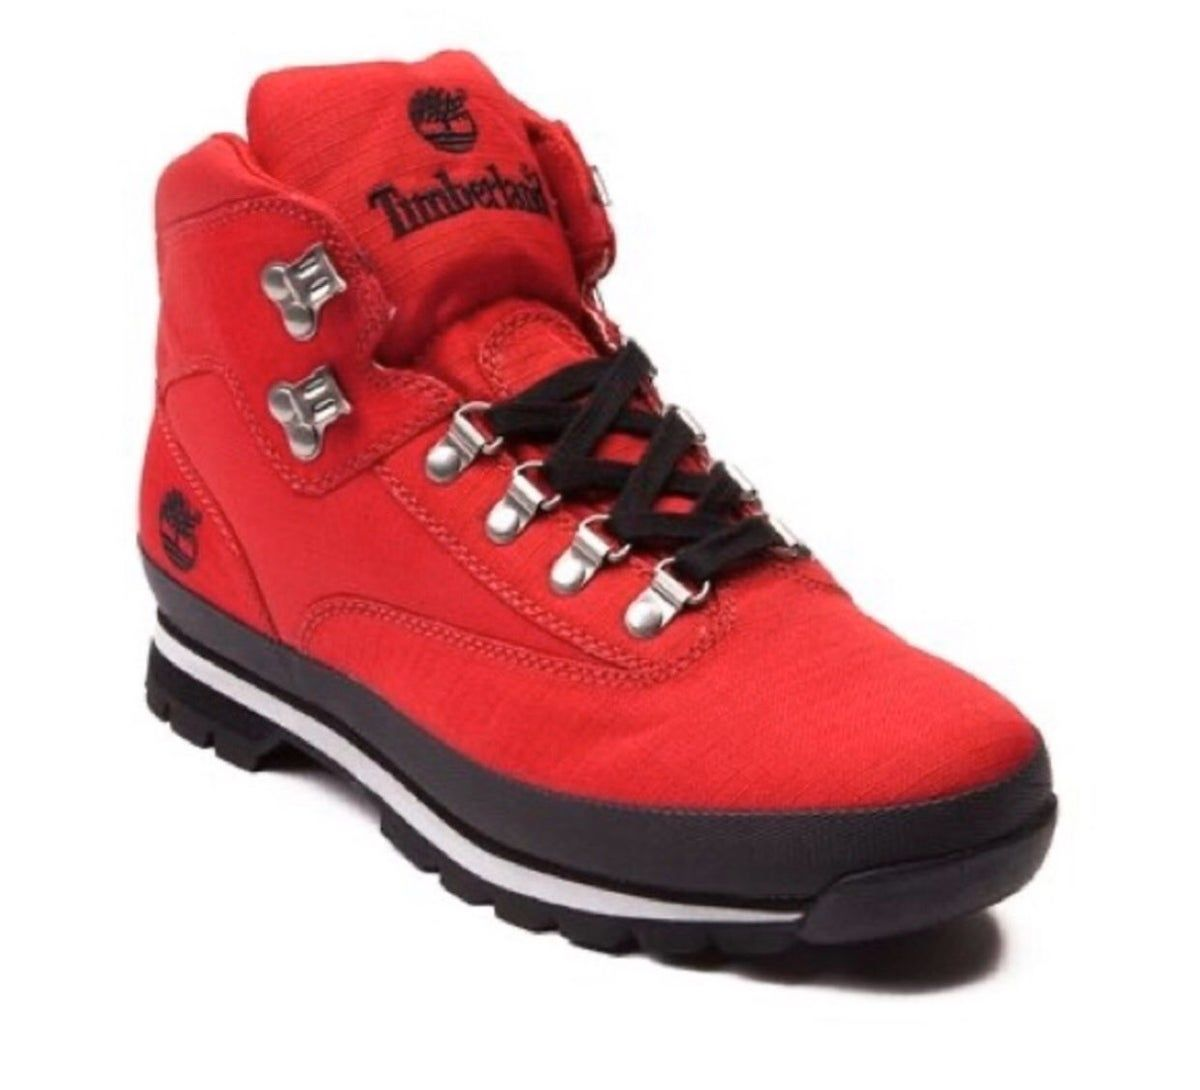 Rare Red Timberland Boots in 2020   Red